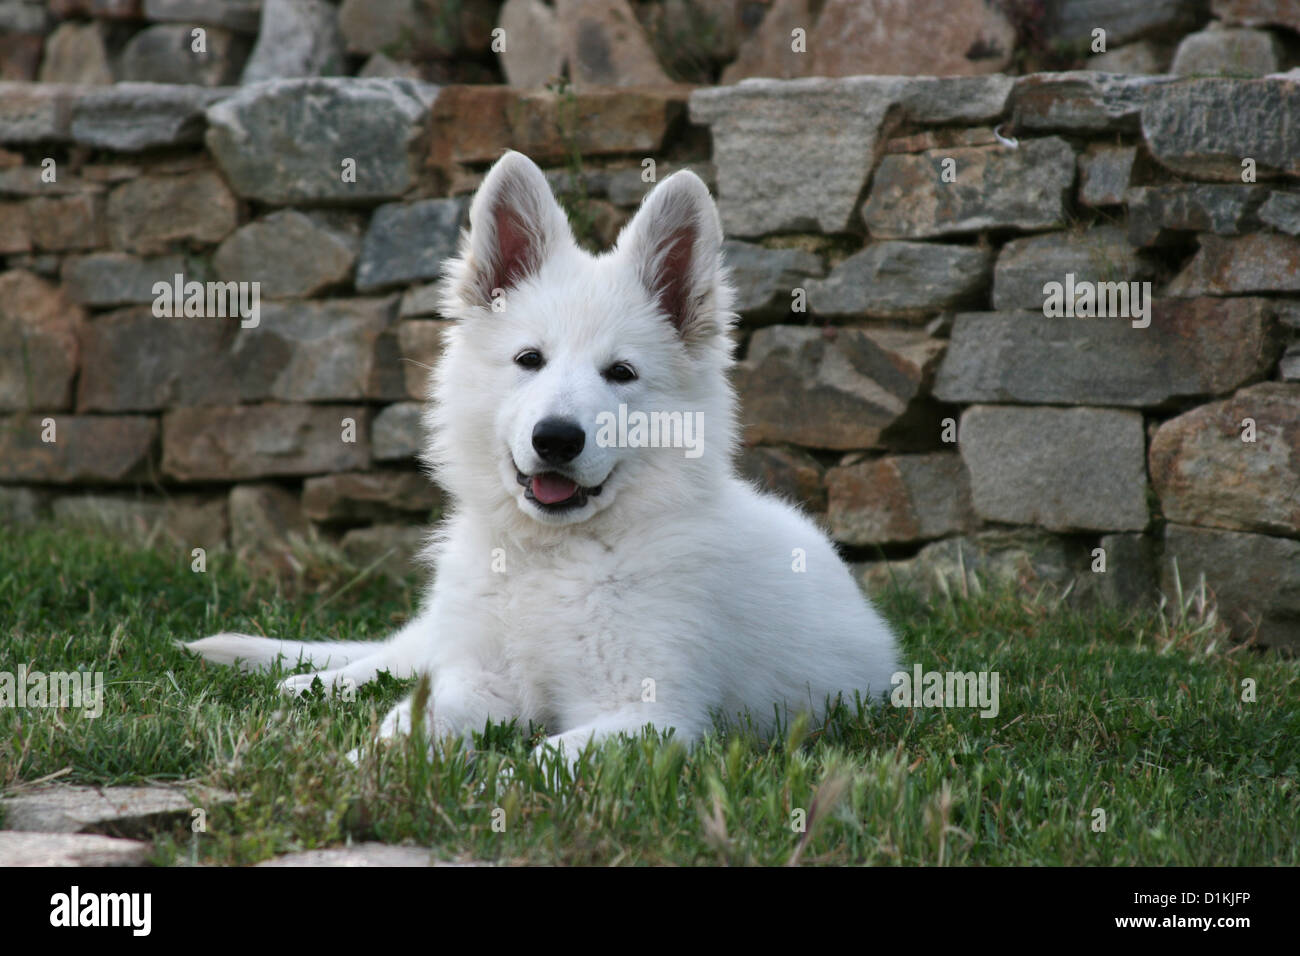 White Swiss Shepherd Dog Berger Blanc Suisse Puppy Lying On Grass